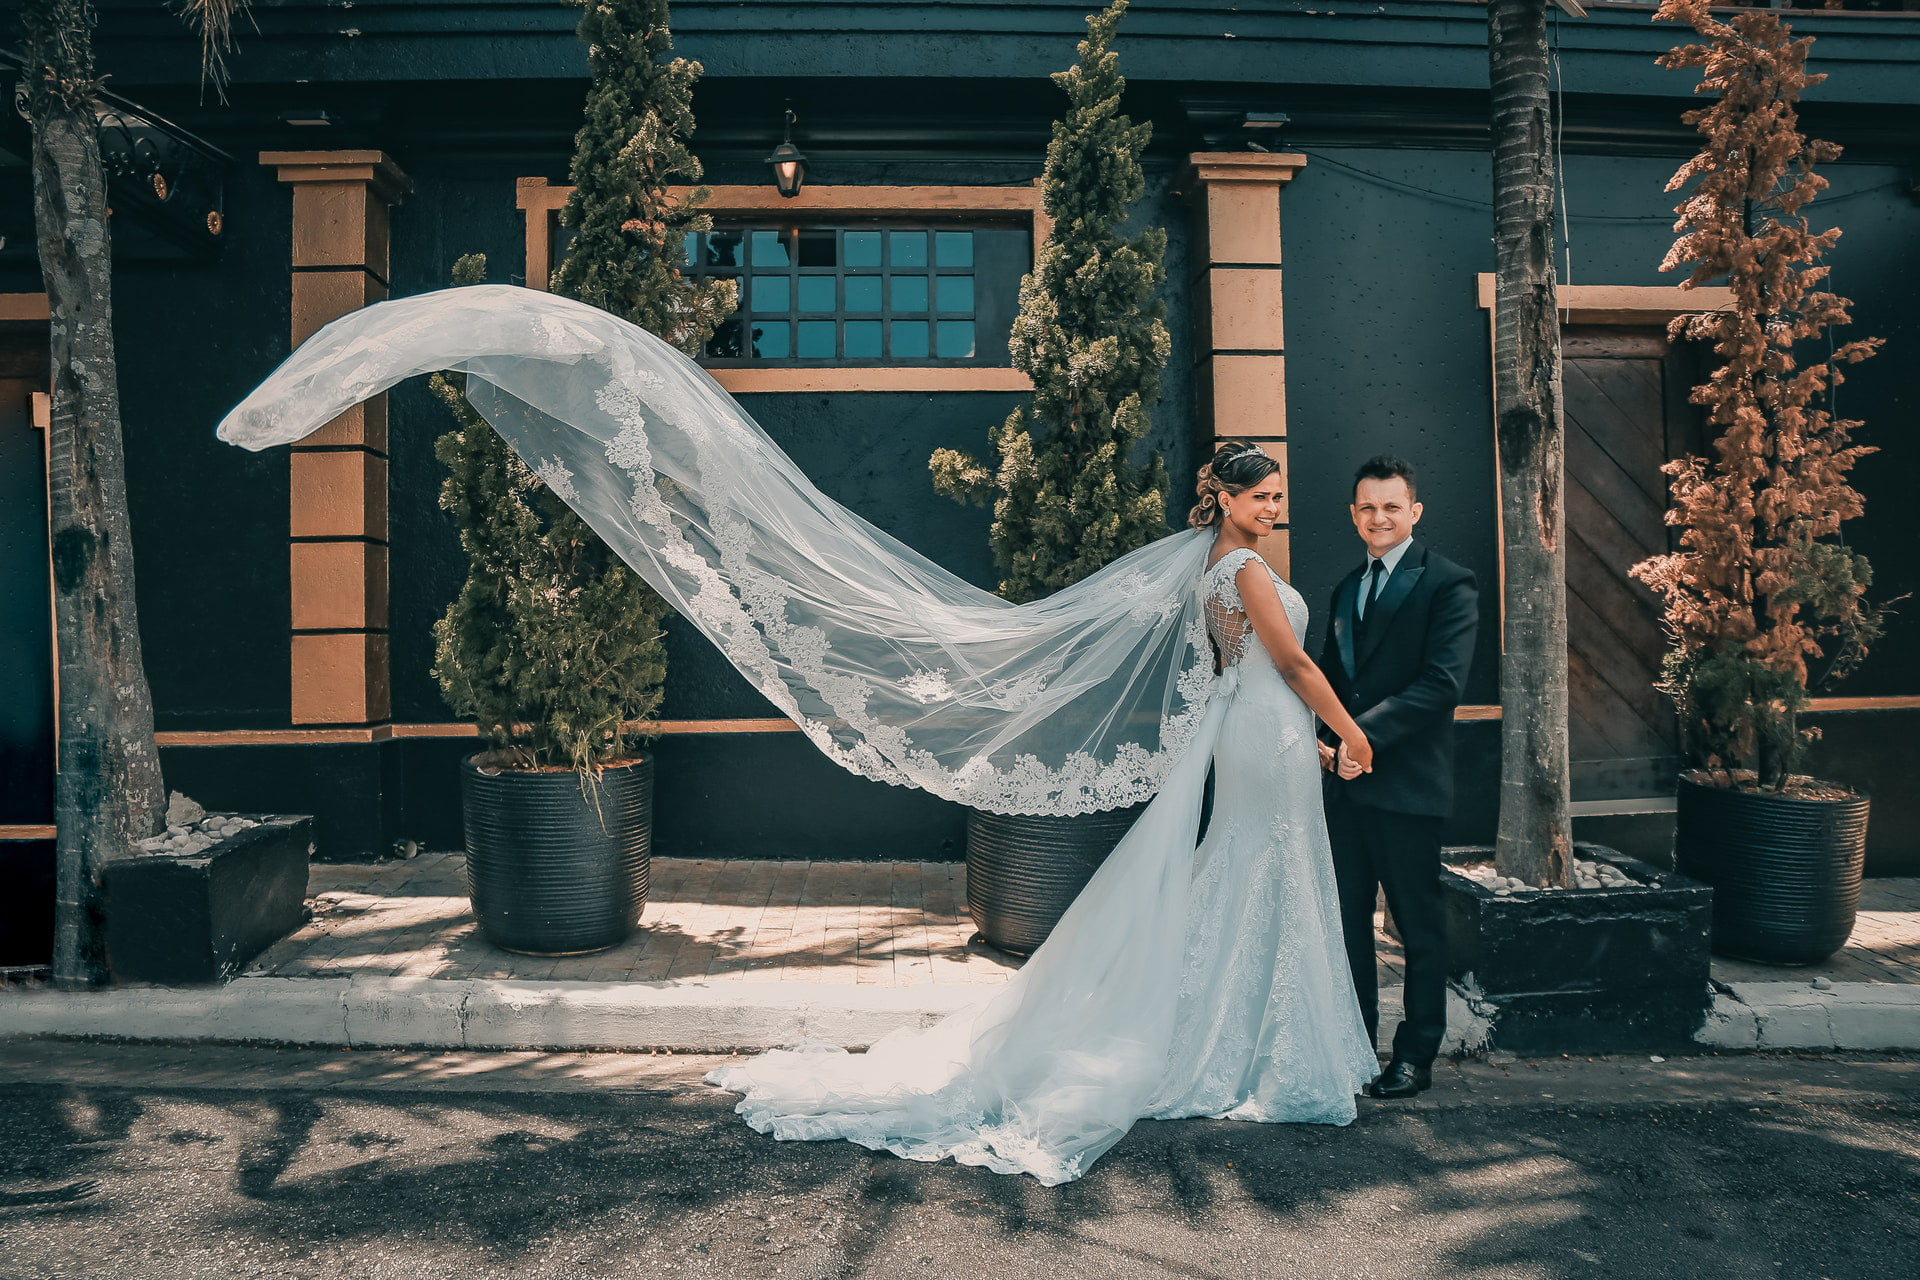 Wind is waving bride's veil while bride and groom are posing for wedding photography